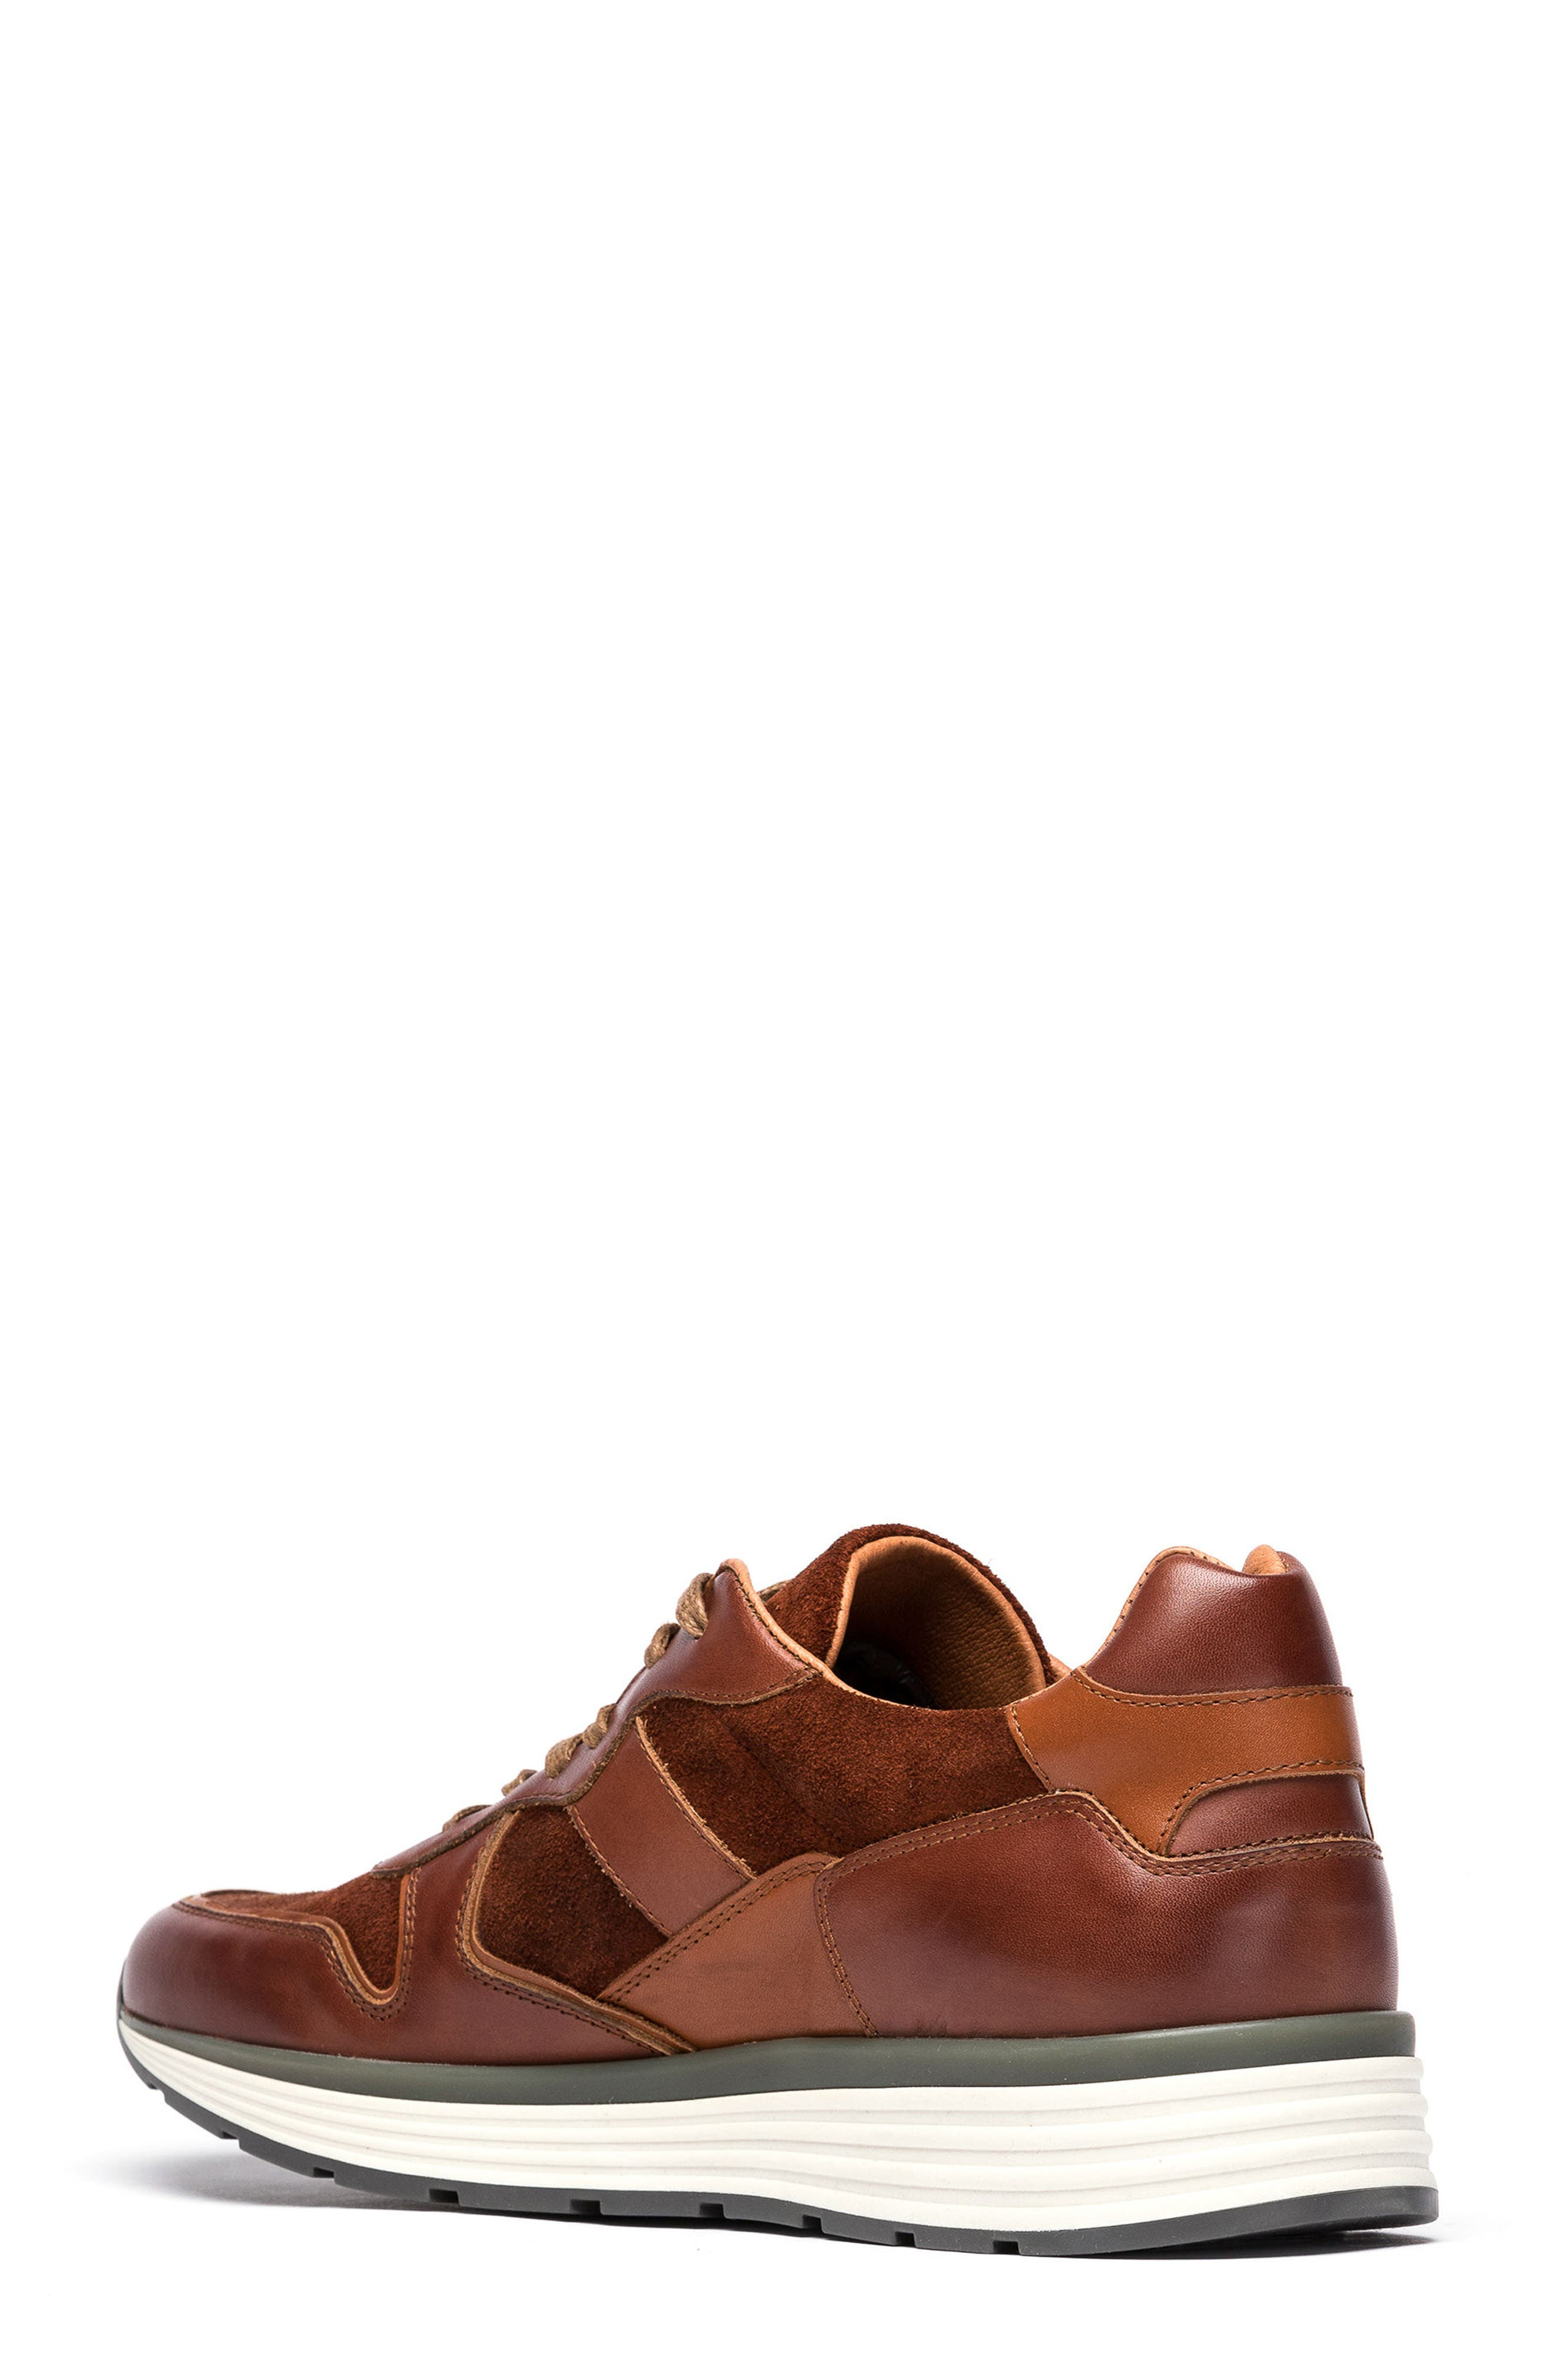 Hickory Sneaker,                             Alternate thumbnail 2, color,                             Tan Leather